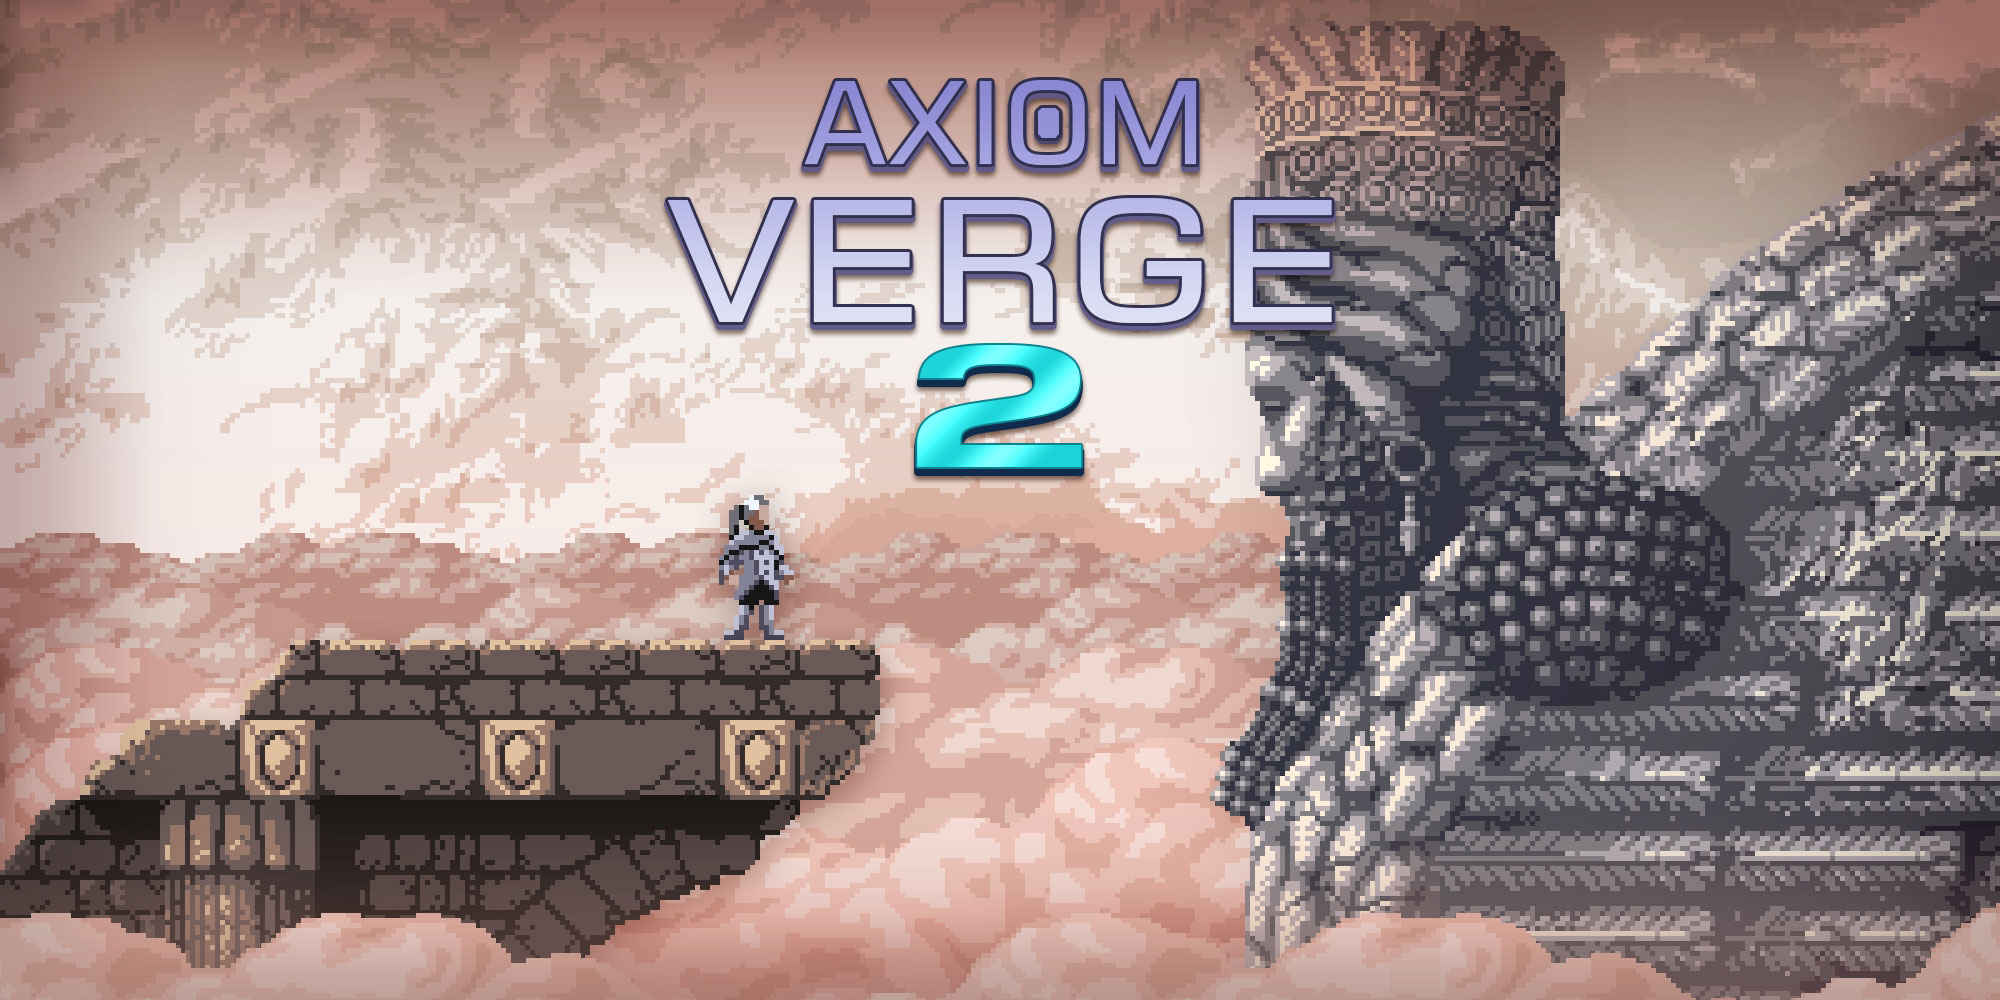 H2x1_NSwitchDS_AxiomVerge2